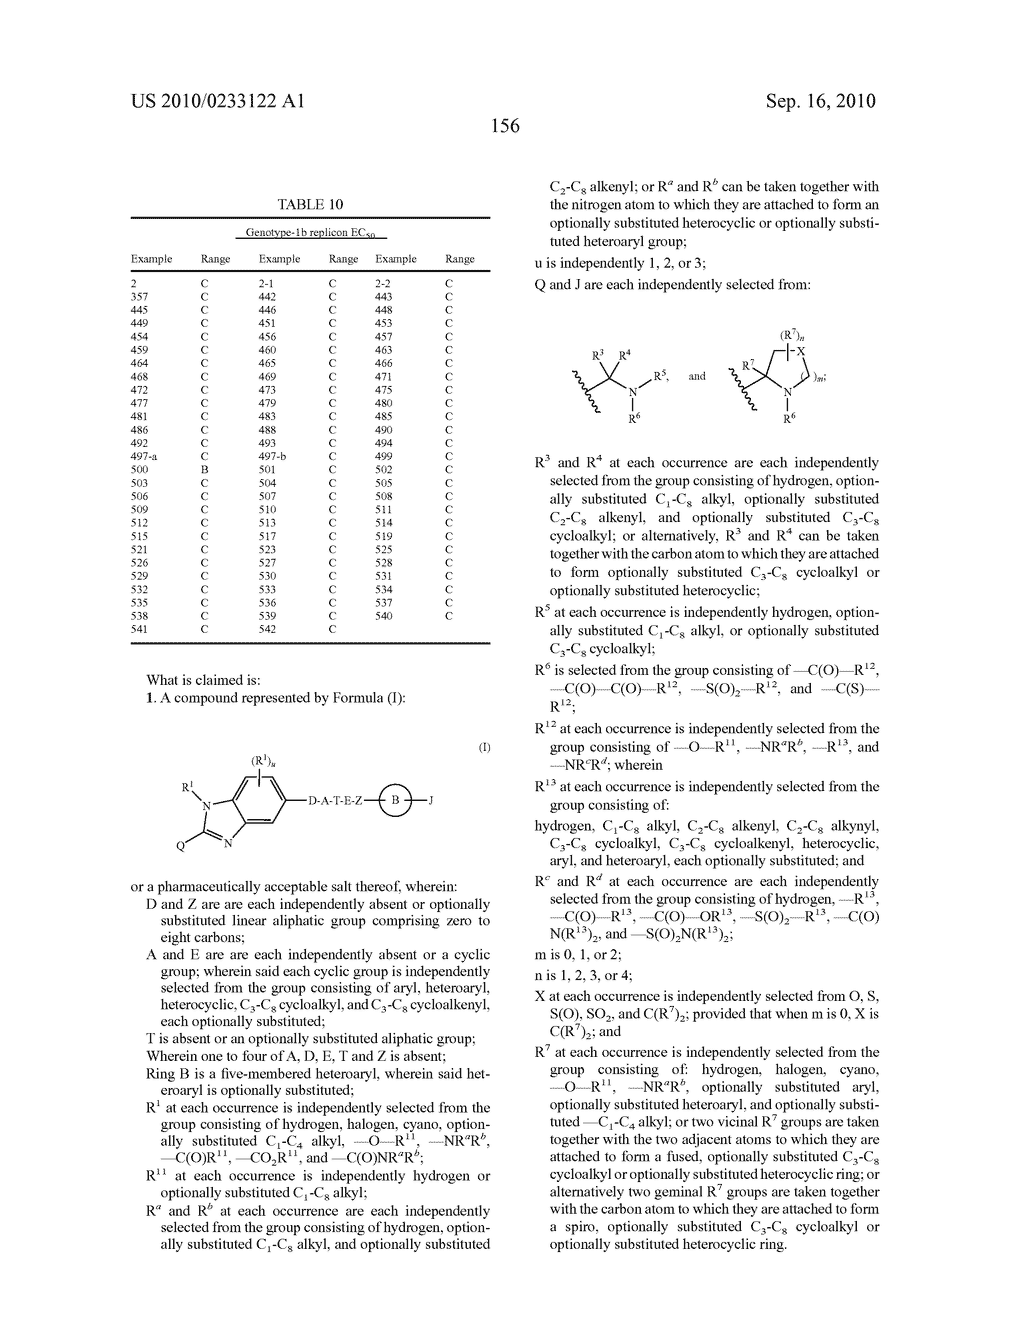 NOVEL BENZIMIDAZOLE DERIVATIVES - diagram, schematic, and image 157